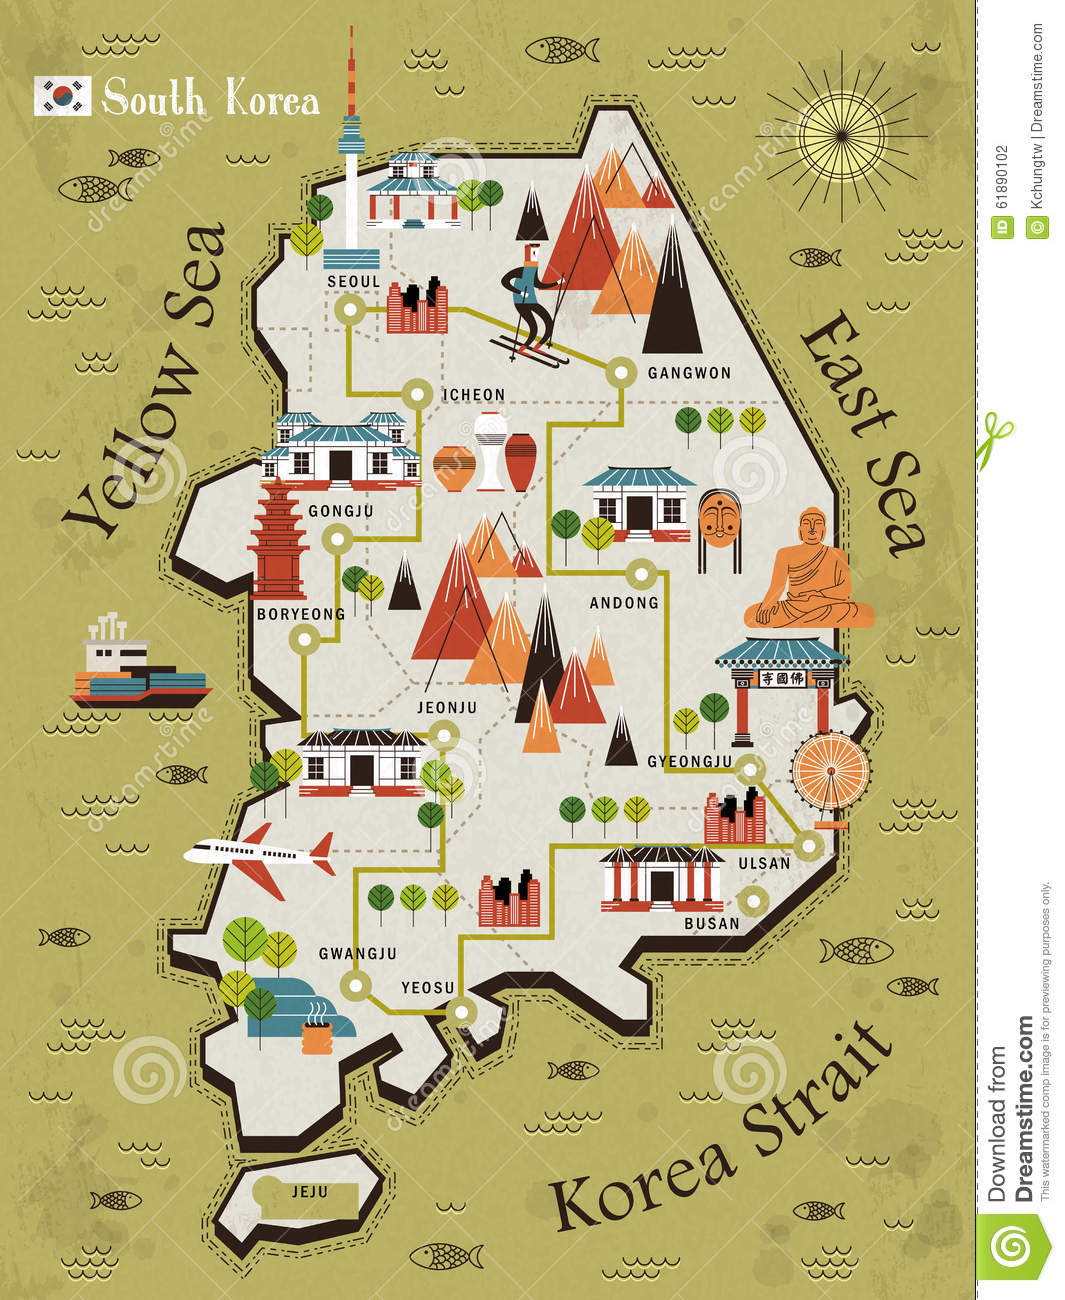 South Korea Travel Map Stock Vector Illustration Of Andong 61890102